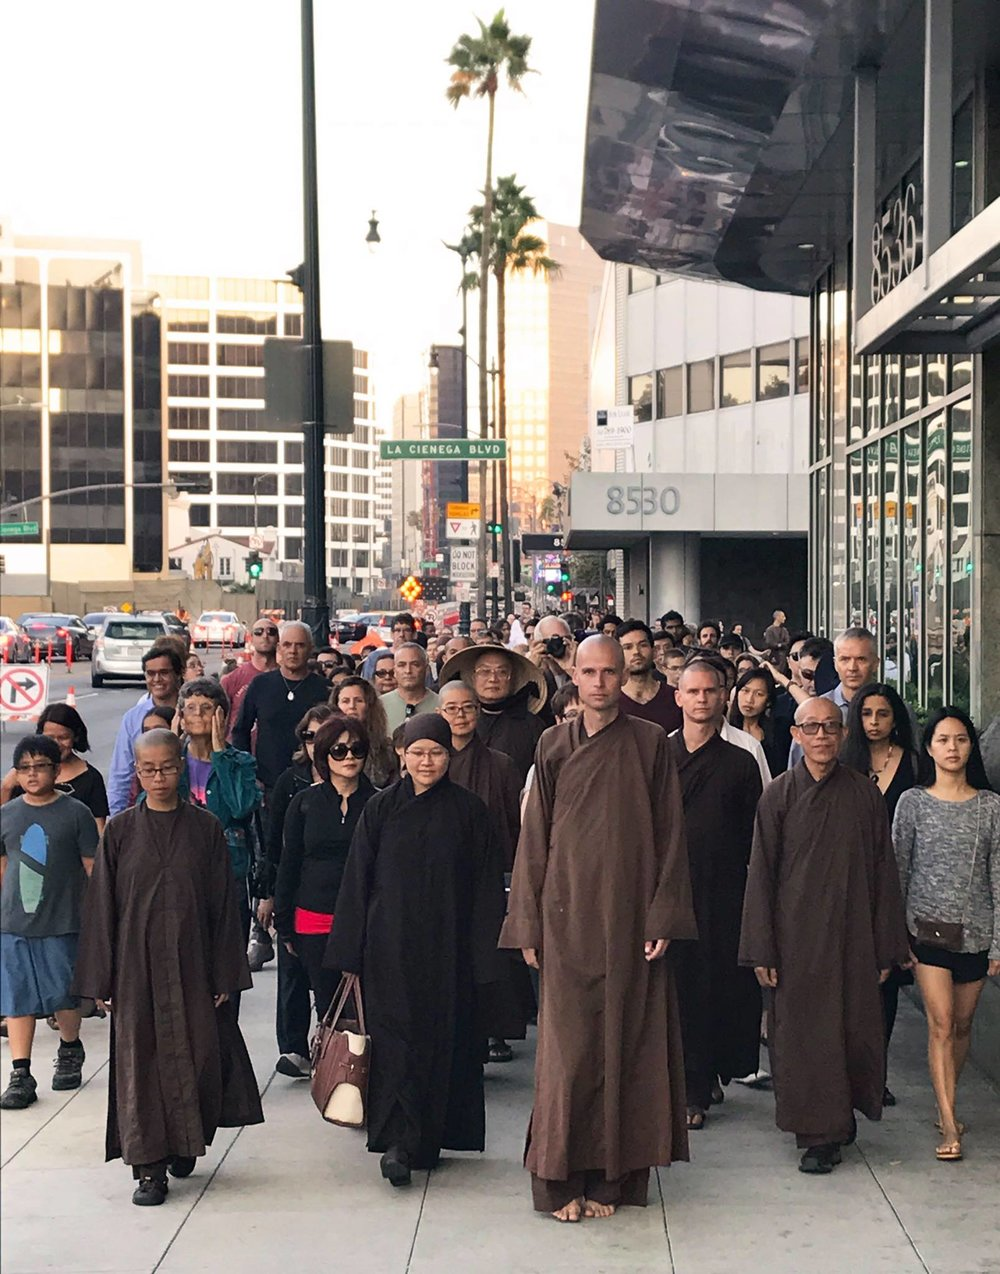 Walk With Me for Peace - Los Angeles